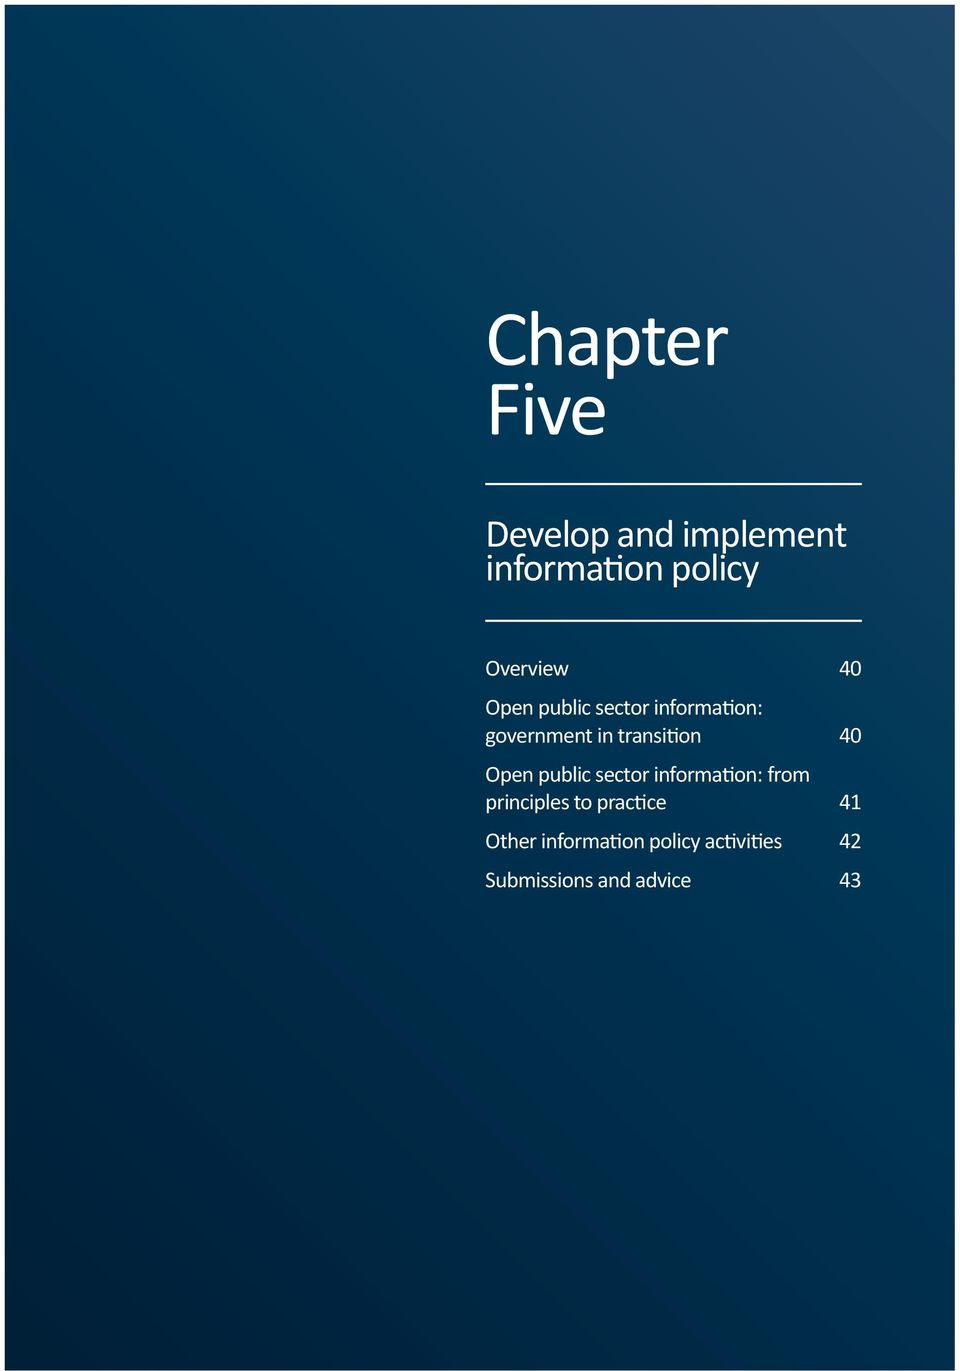 Open public sector information: from principles to practice 41